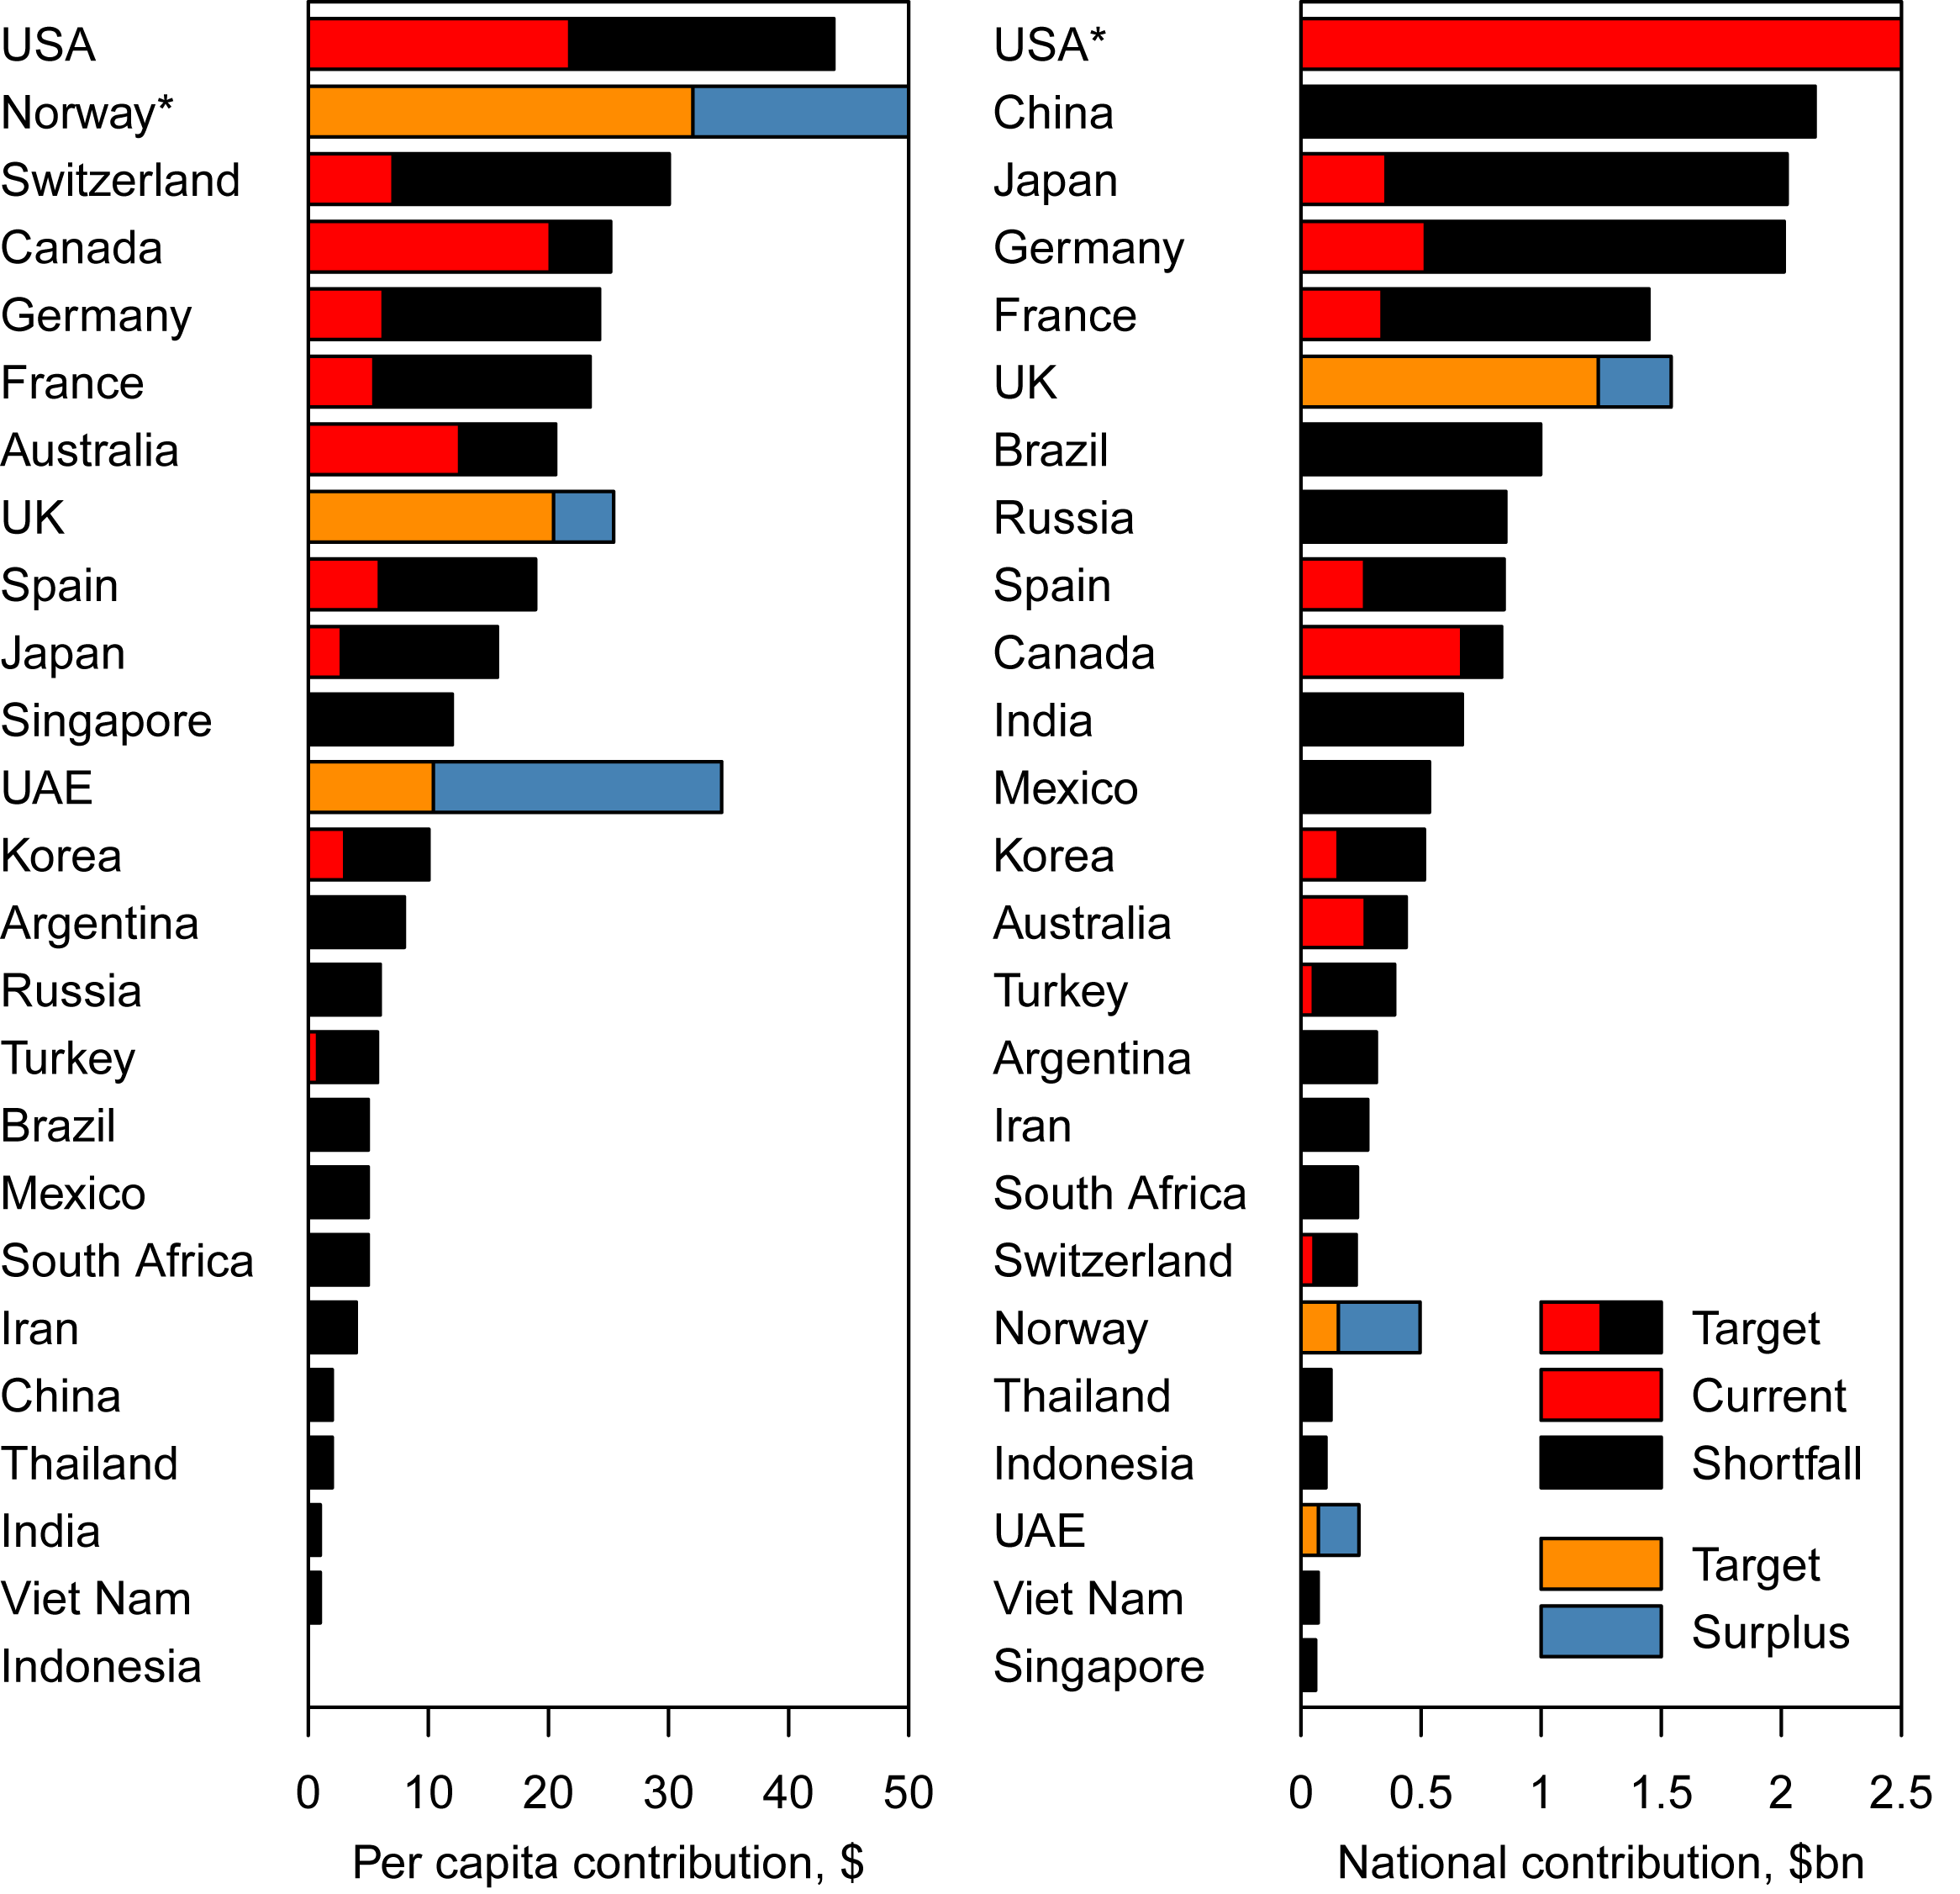 """Total and per capita annual expected contributions to meet the health MDGs (""""Target""""), compared to the current level of donations (""""Current"""") in 25 selected countries."""